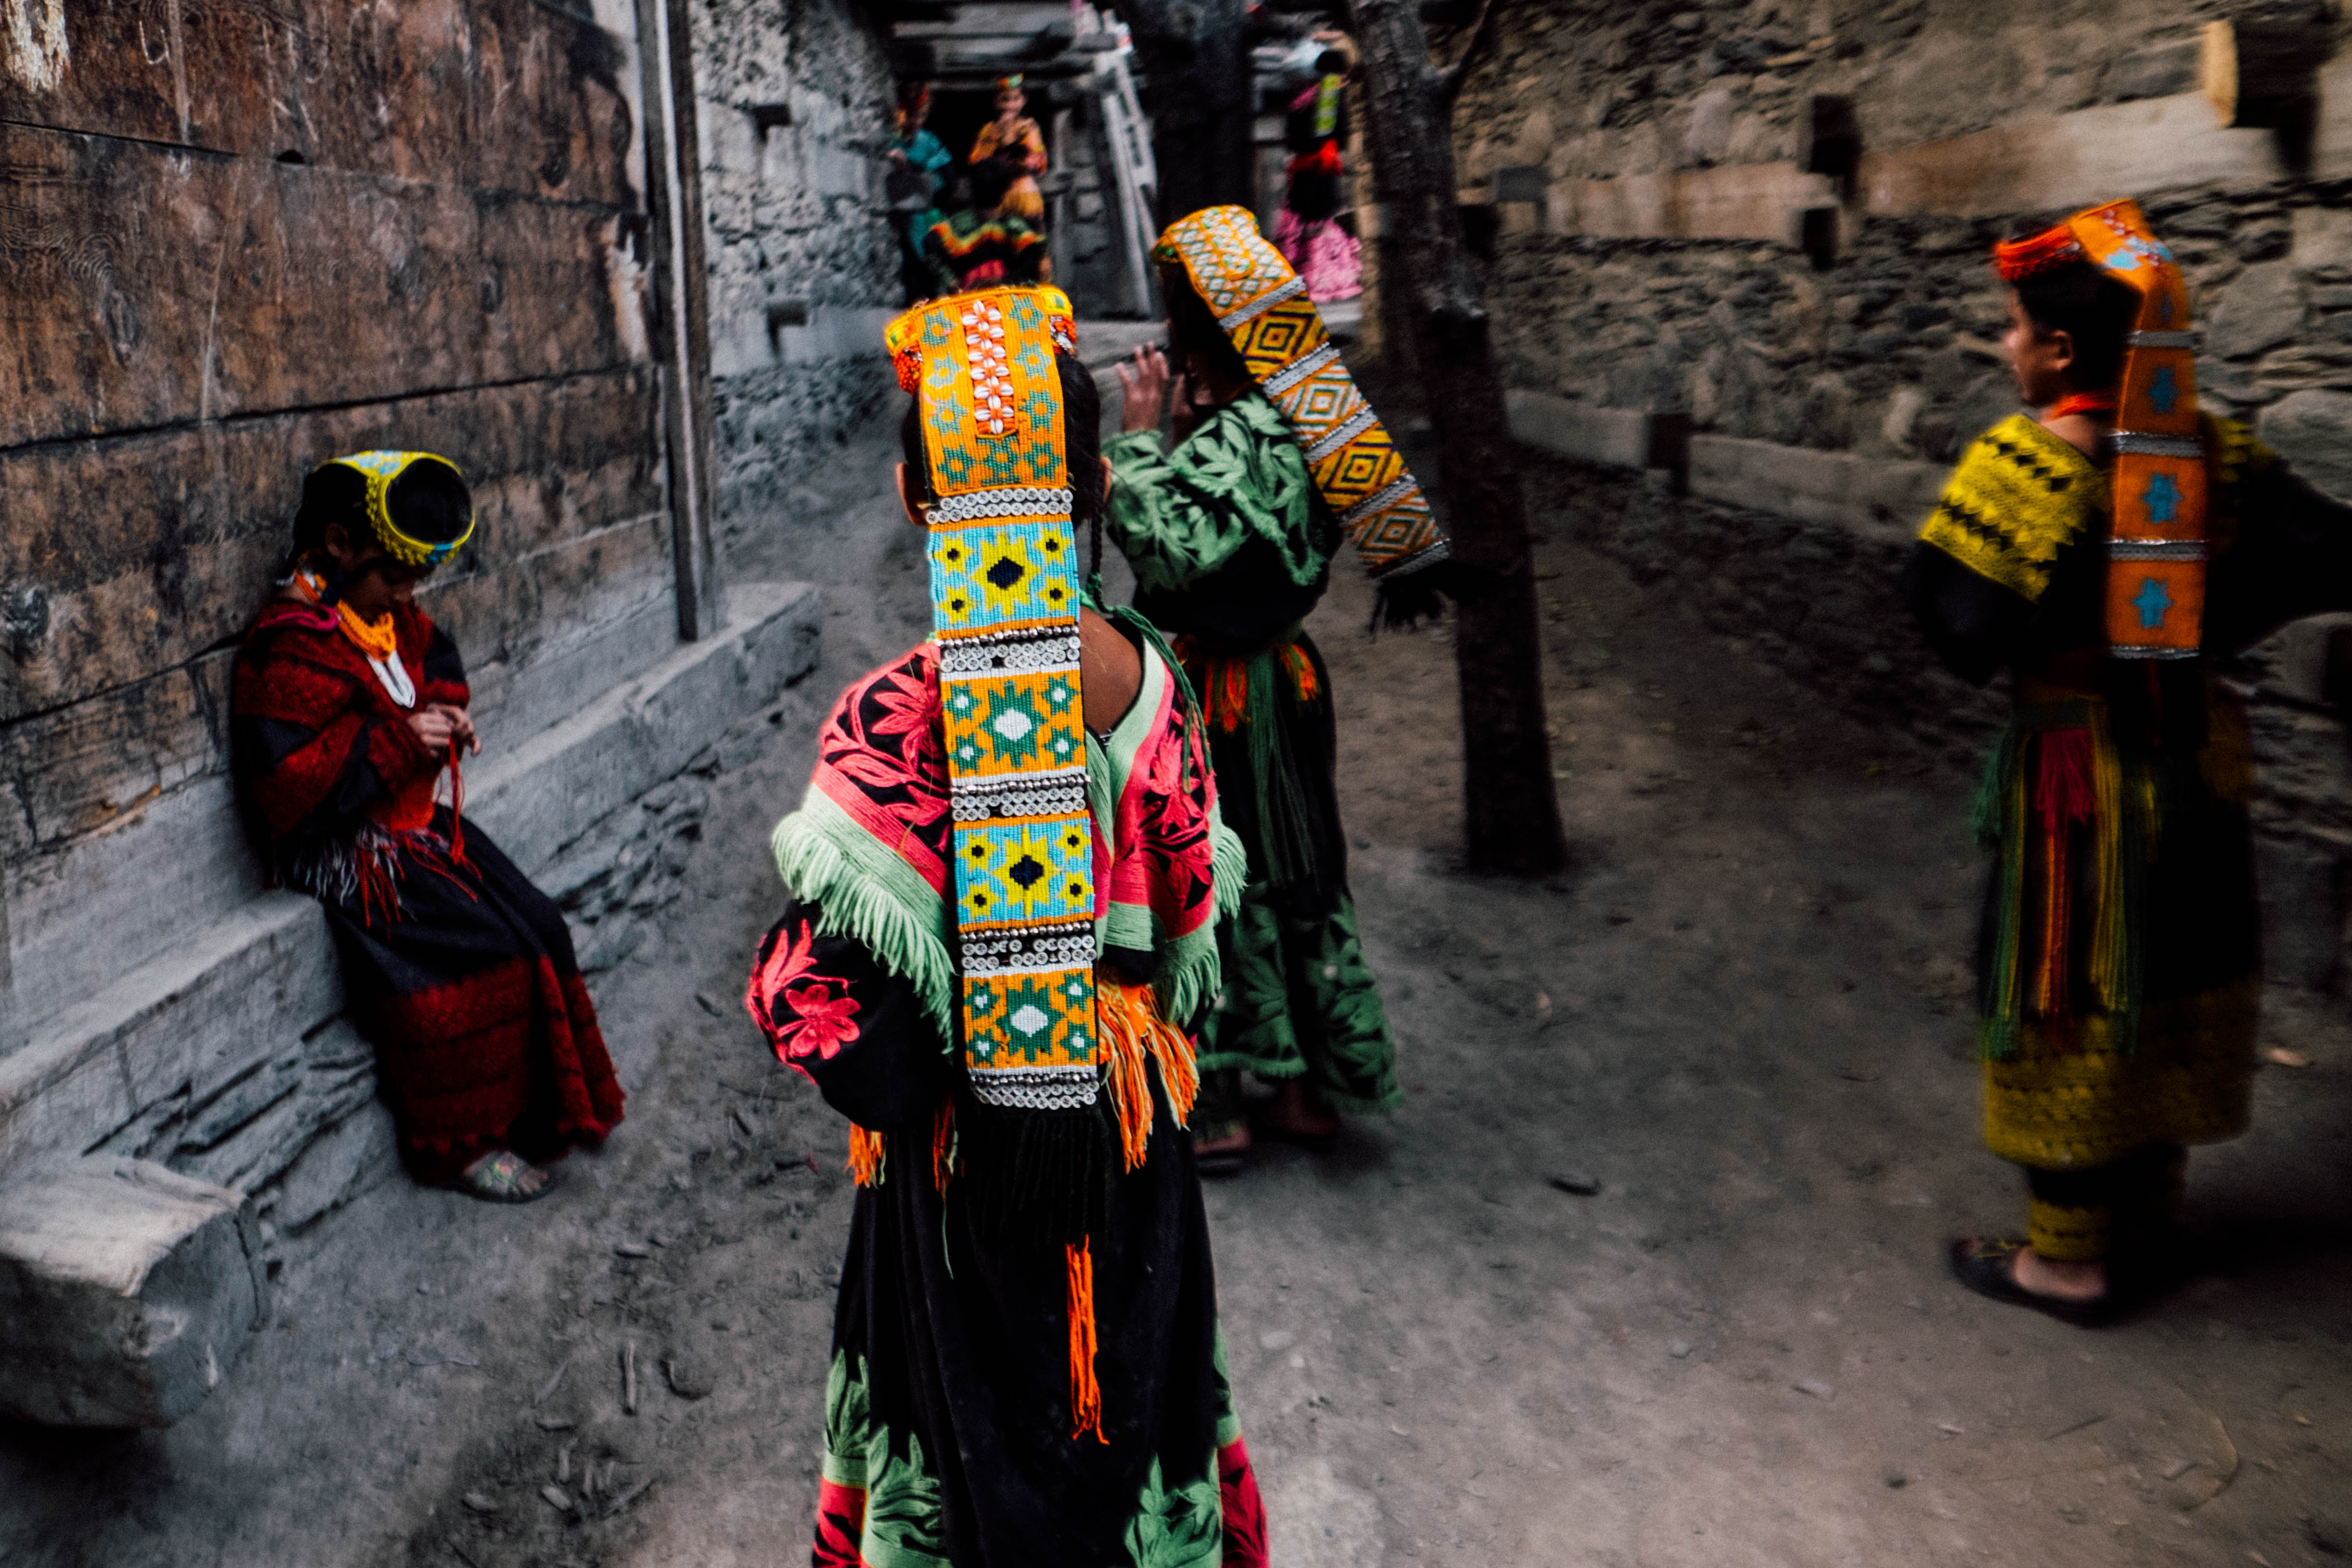 A group of Kalash girls play in the streets of their village (Usman Ahmad)